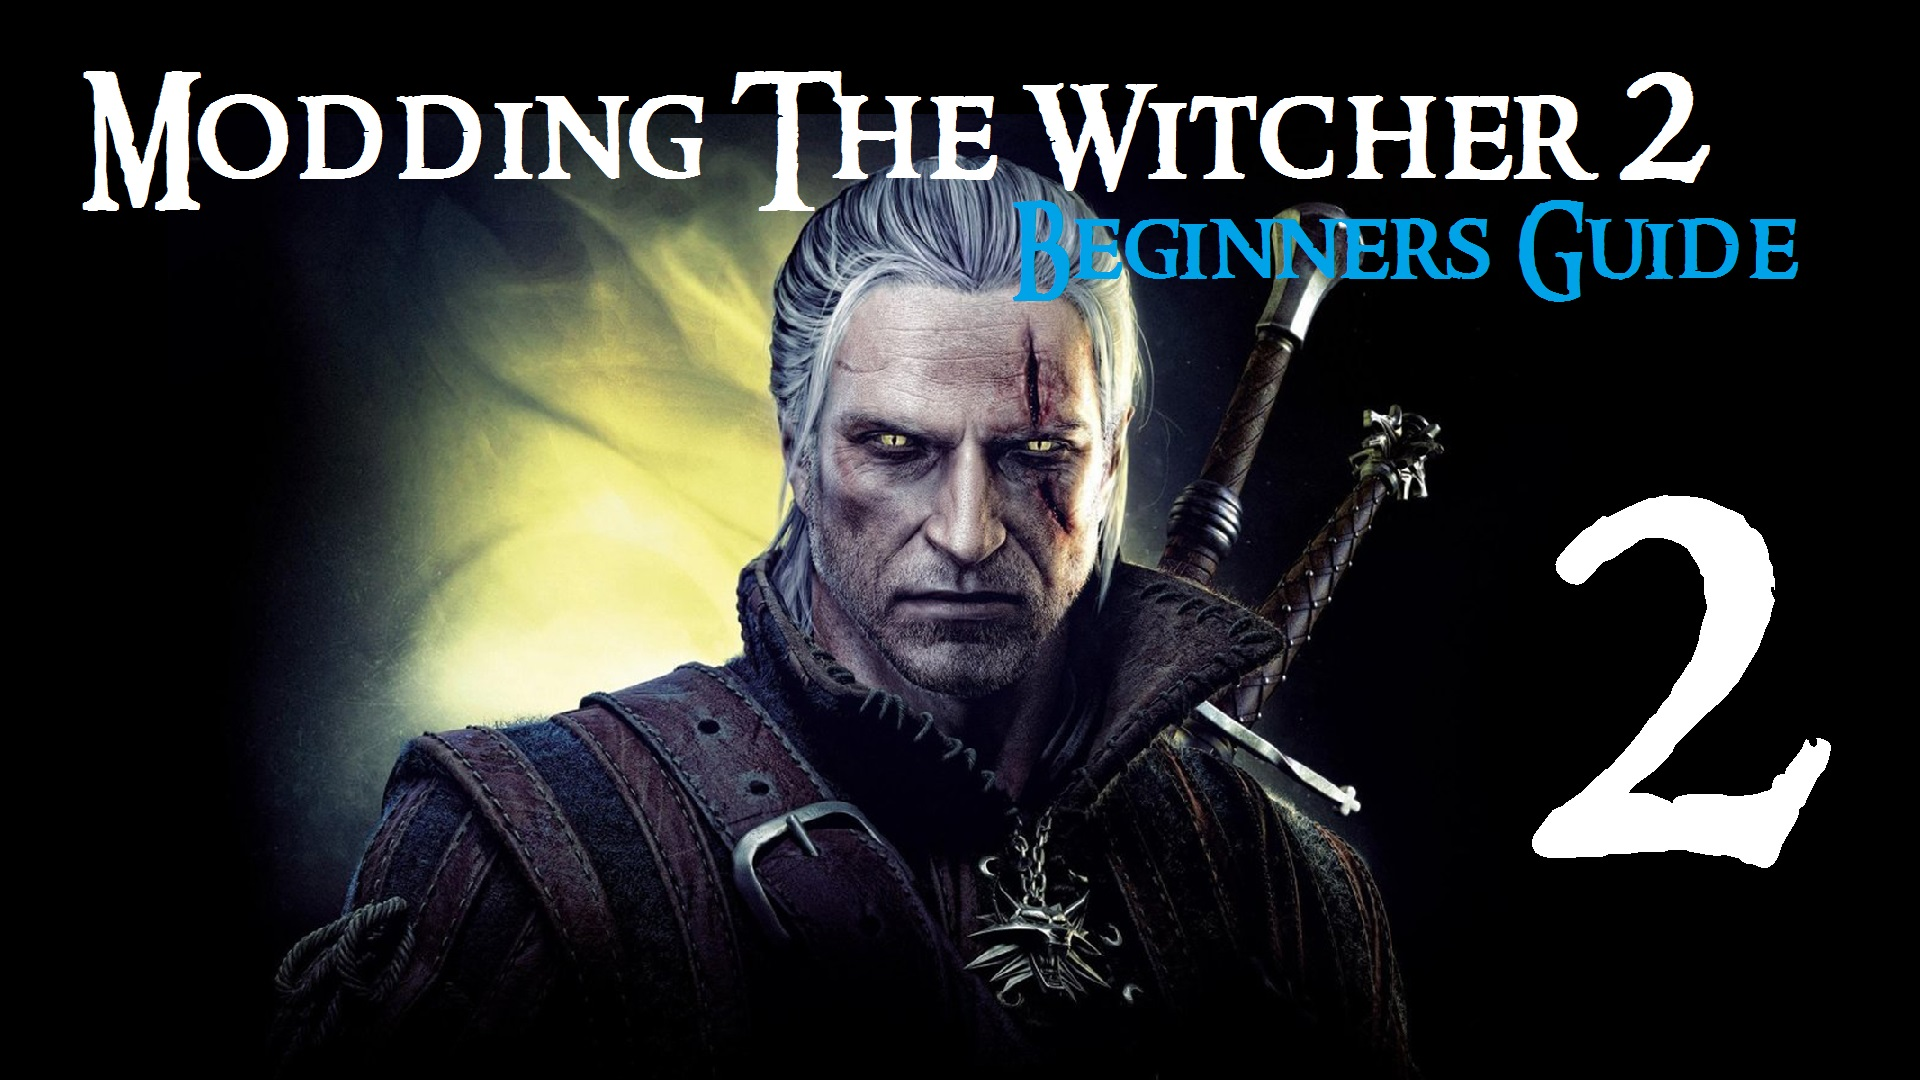 Modding The Witcher 2 2